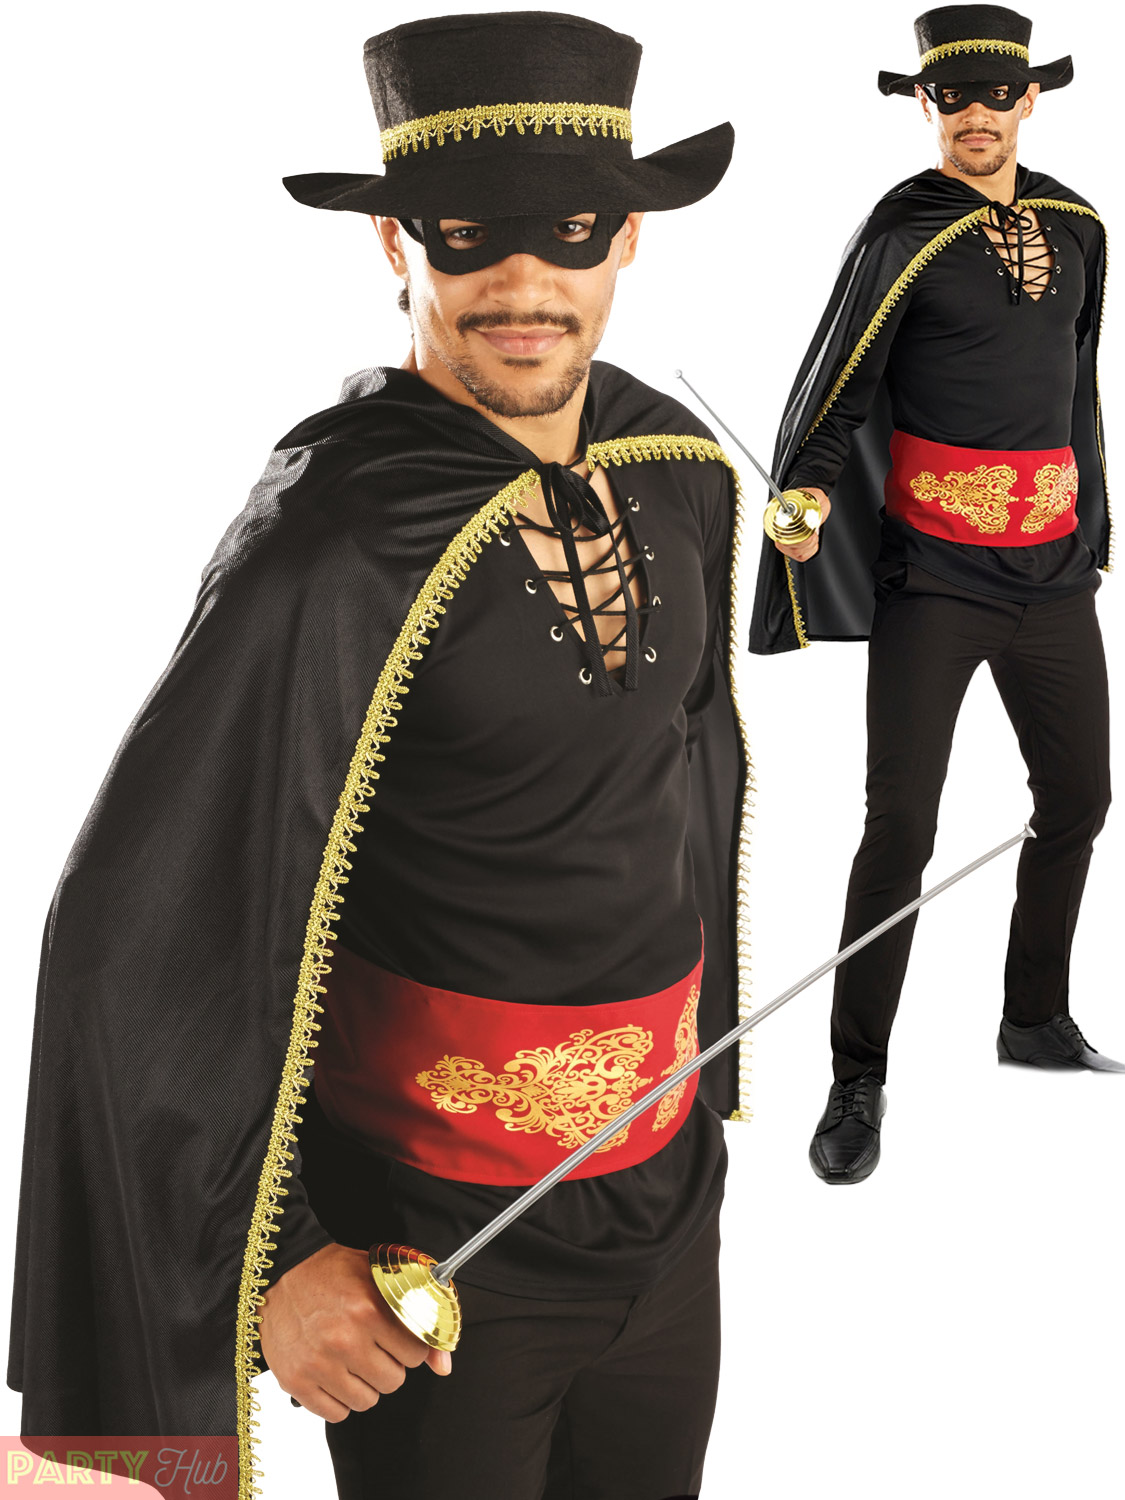 Choose your disguise with fancy dress and party masks to suit all occasions, from stylish venetian masquerade masks to comical cardboard masks. Get set for a masquerade ball, have a giggle imitating a celebrity or enhance your child's play with masks for kids. Halloween Masks. Masquerade Masks.